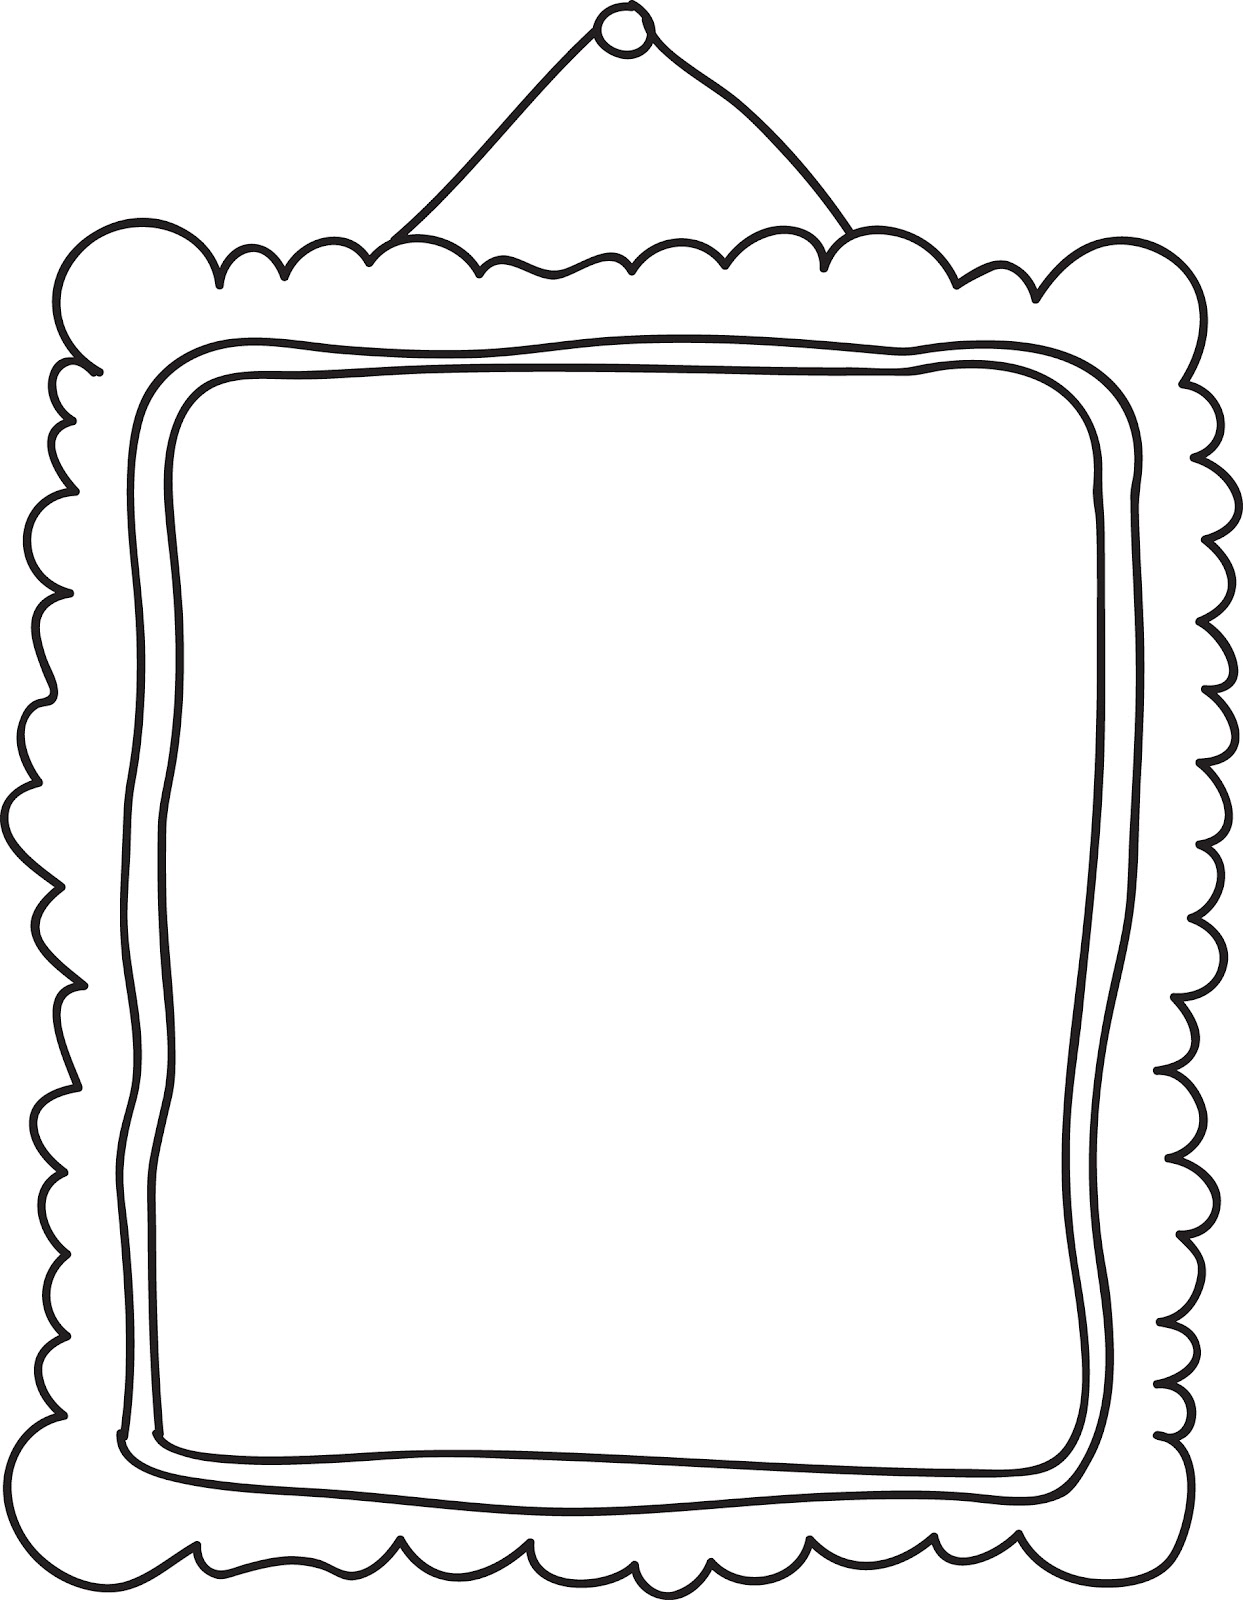 Frame clipart black and white Art And Black Free Clipart